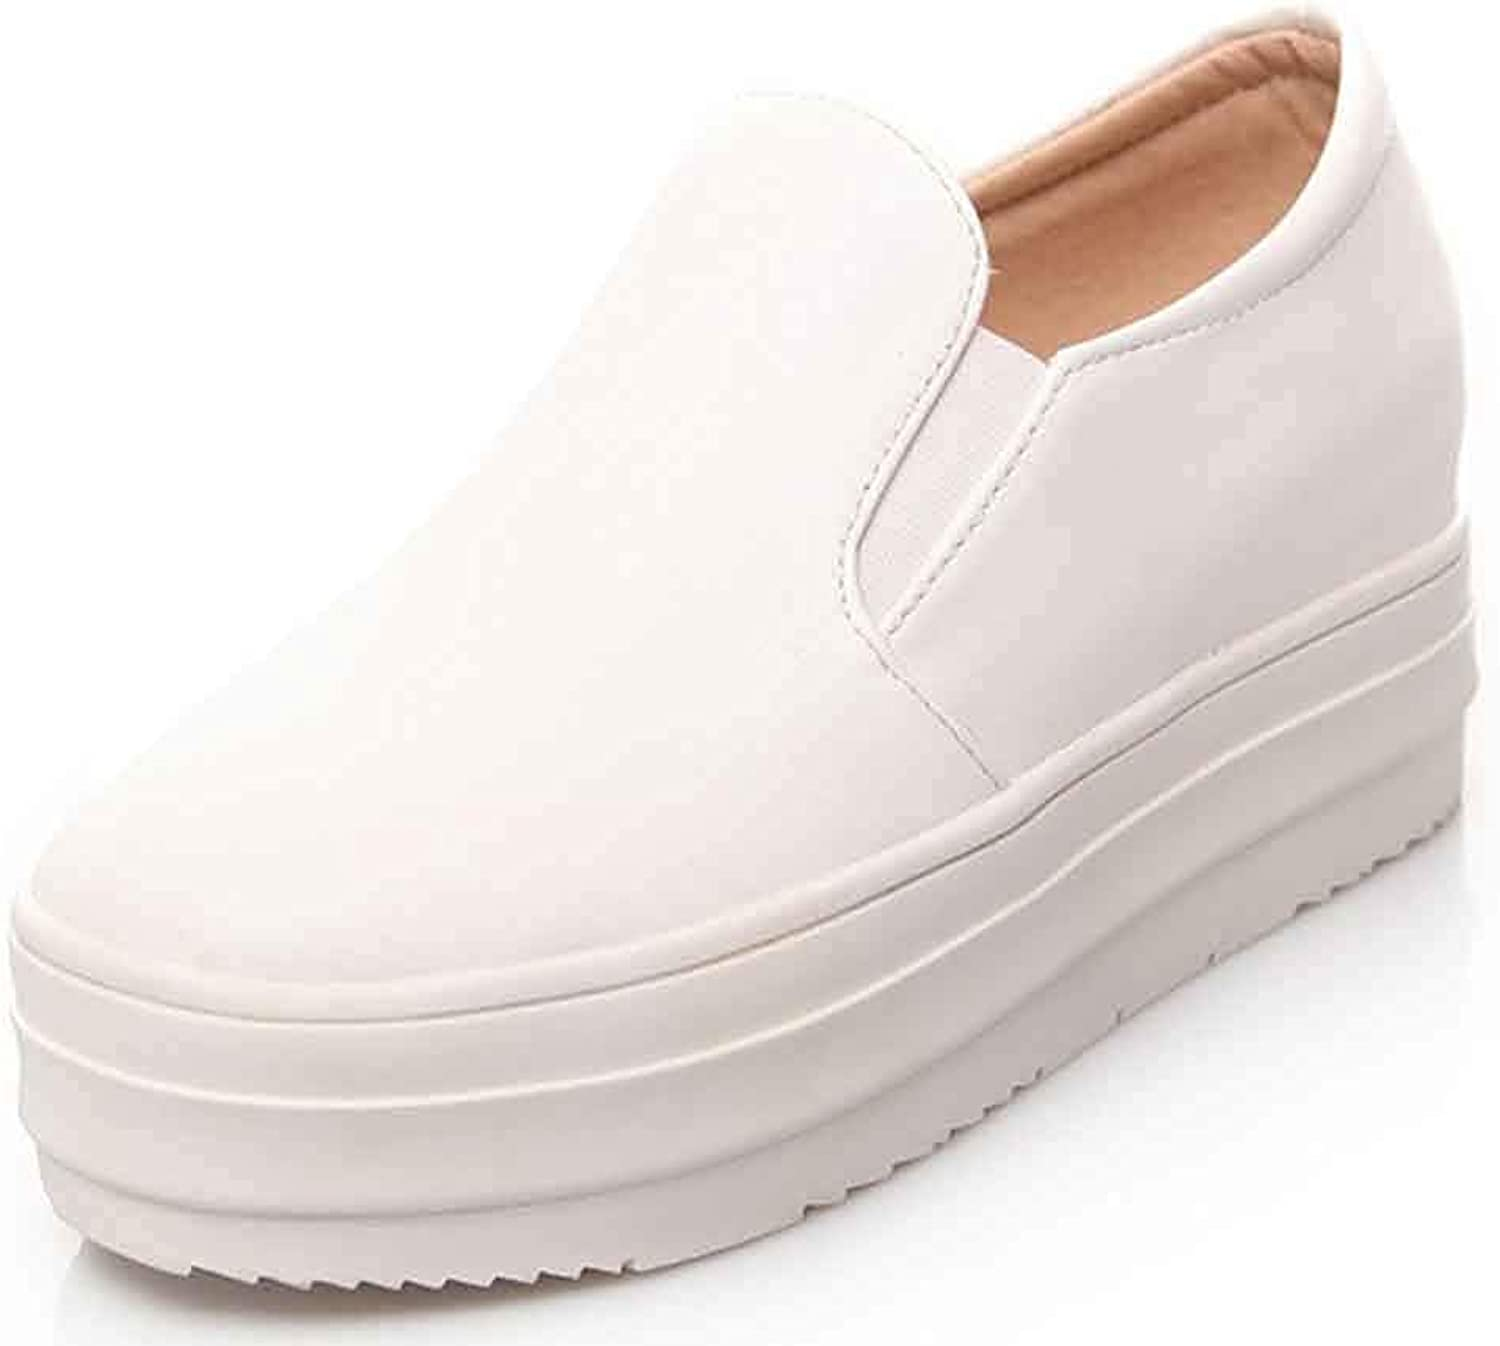 Women's Platform Chelsea Sneakers - Round Toe Low Cut Slip On - Hidden Wedge Middle Heel Thick Sole